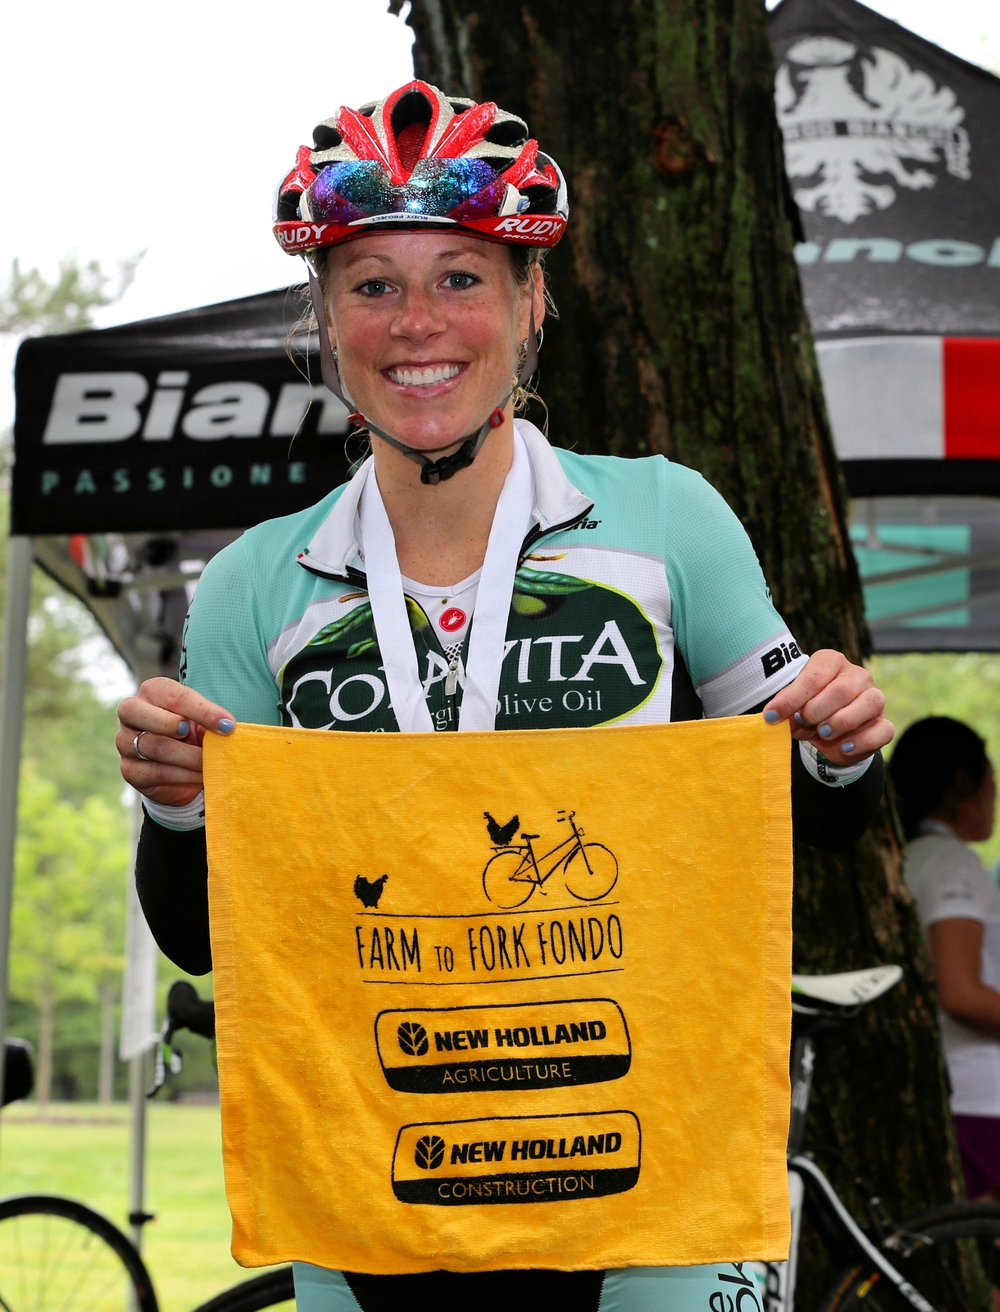 Team director Mary Zider at the 2015 Farm to Fork Fondo - Hudson Valley. Photo credit Scott Kingsley.